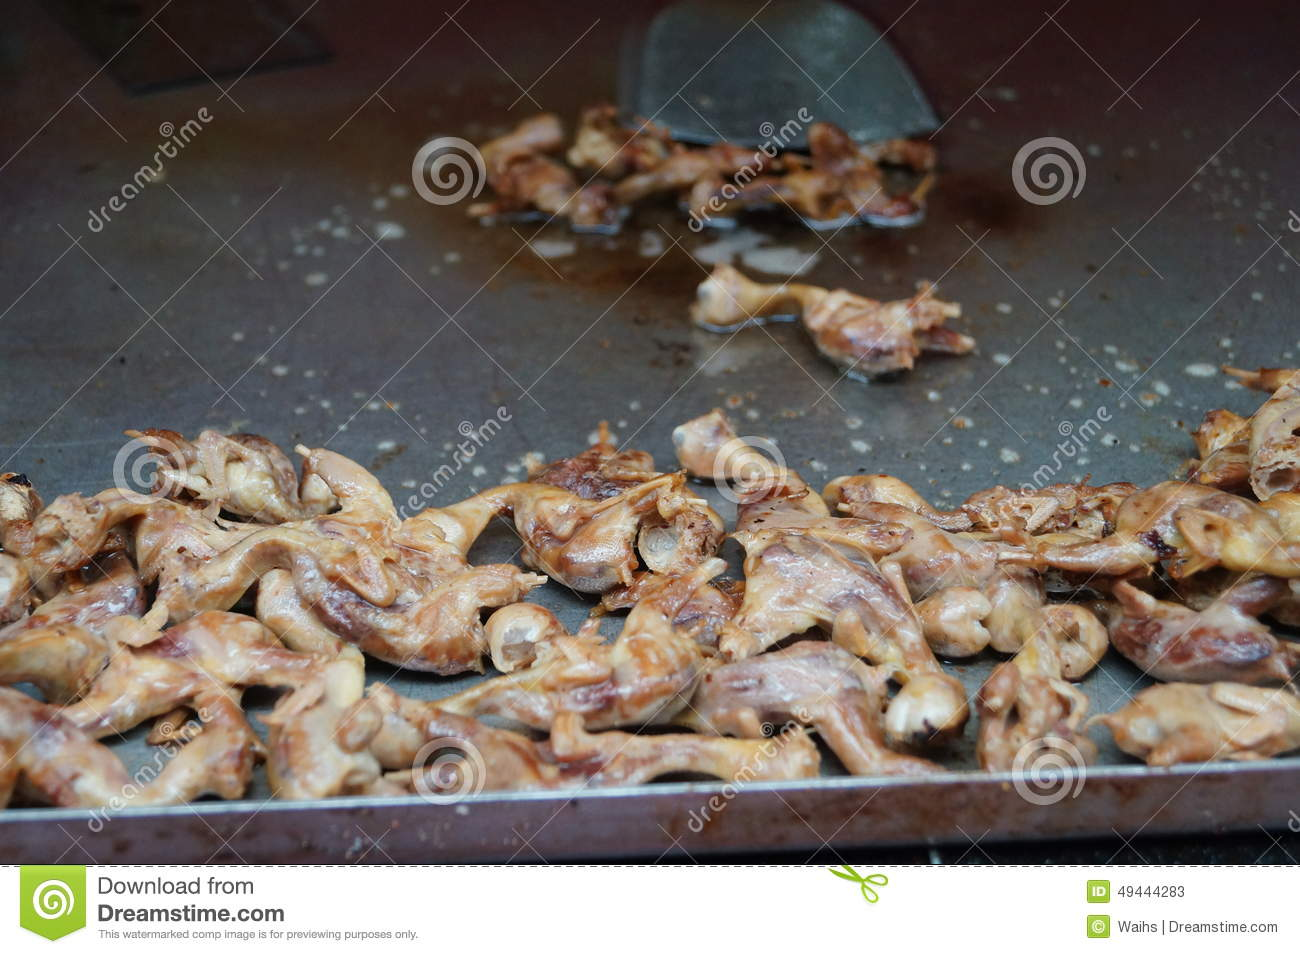 Download Fried sparrow stock image. Image of cooking, still, background - 49444283